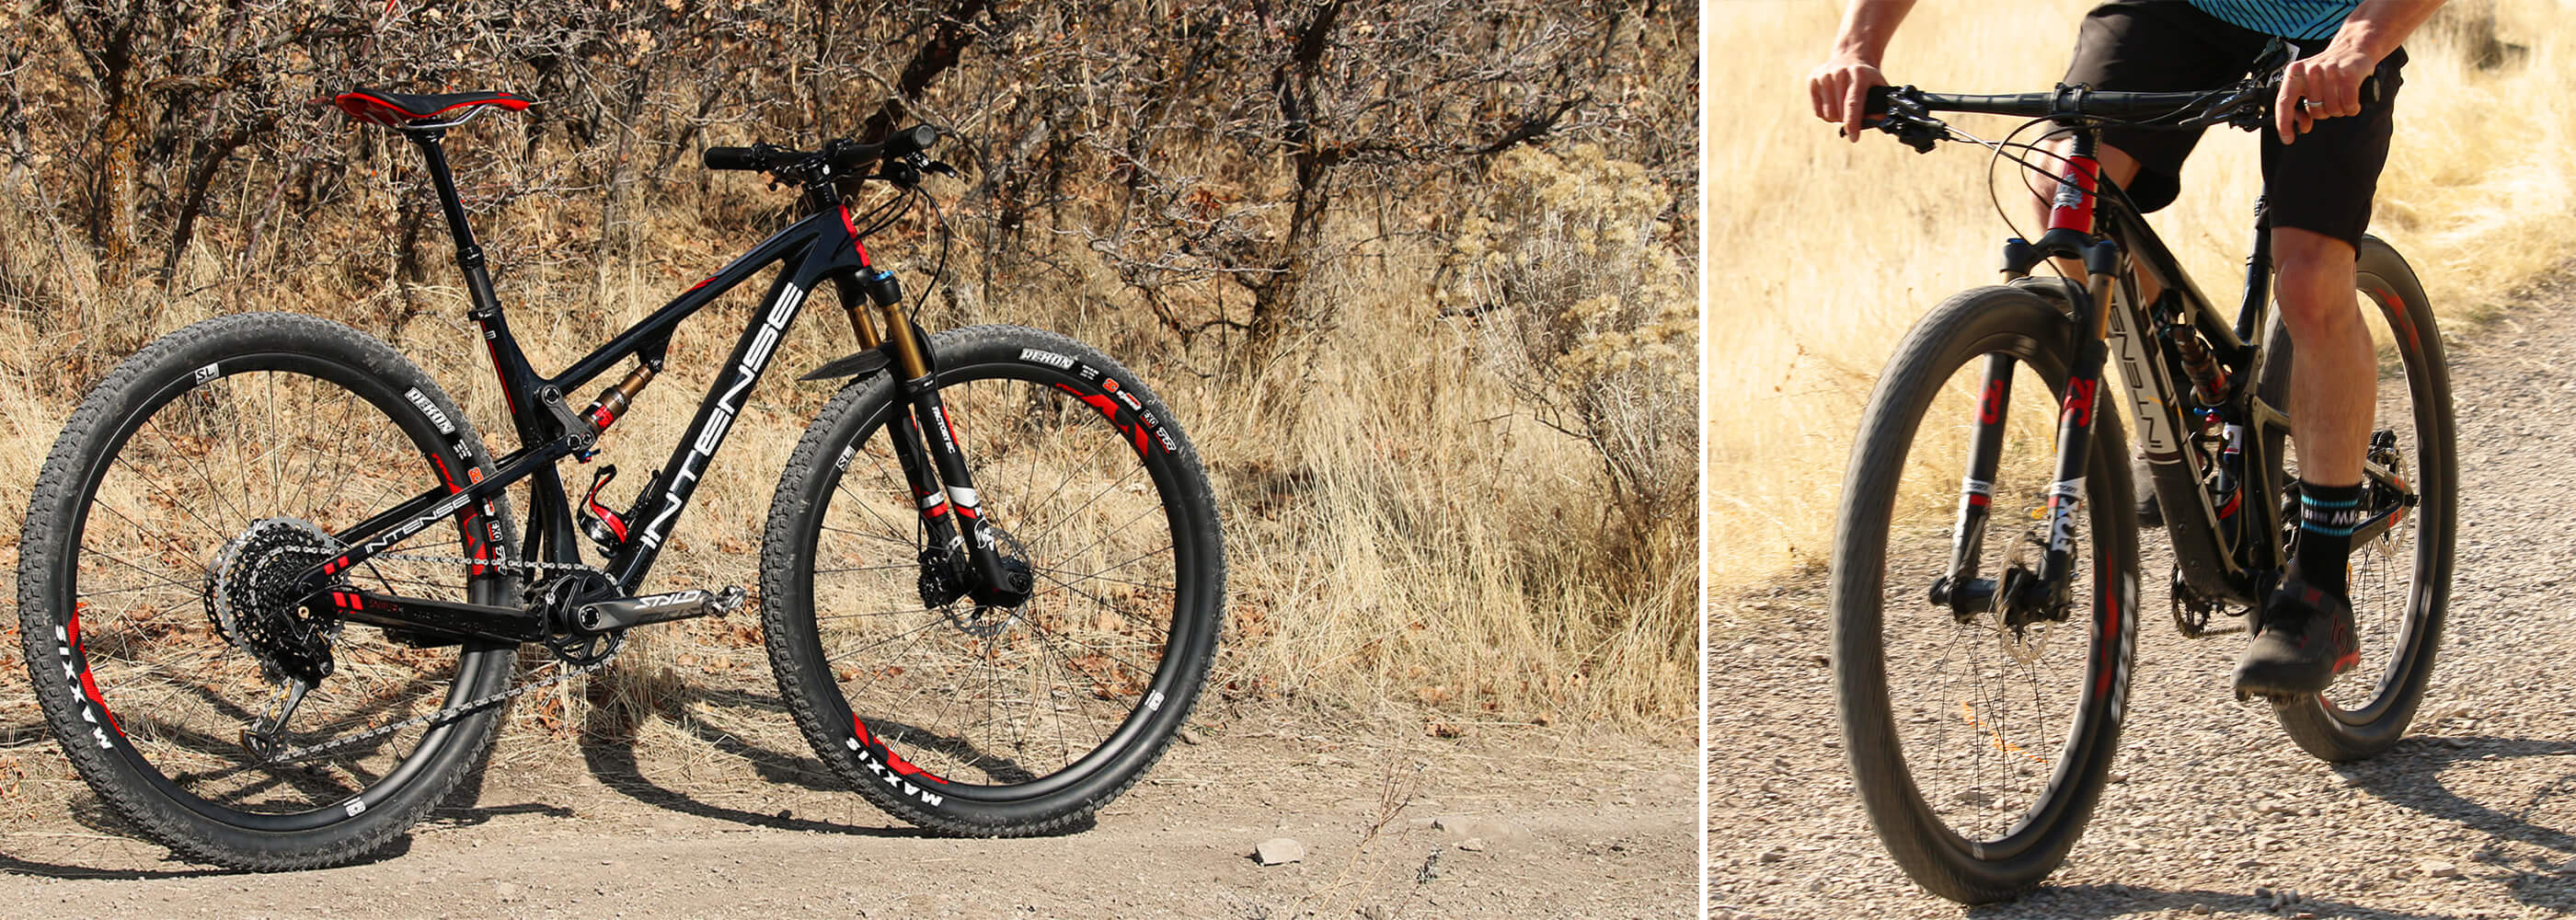 2020 Intense Sniper XC Ride Review Action - Contender Bicycles